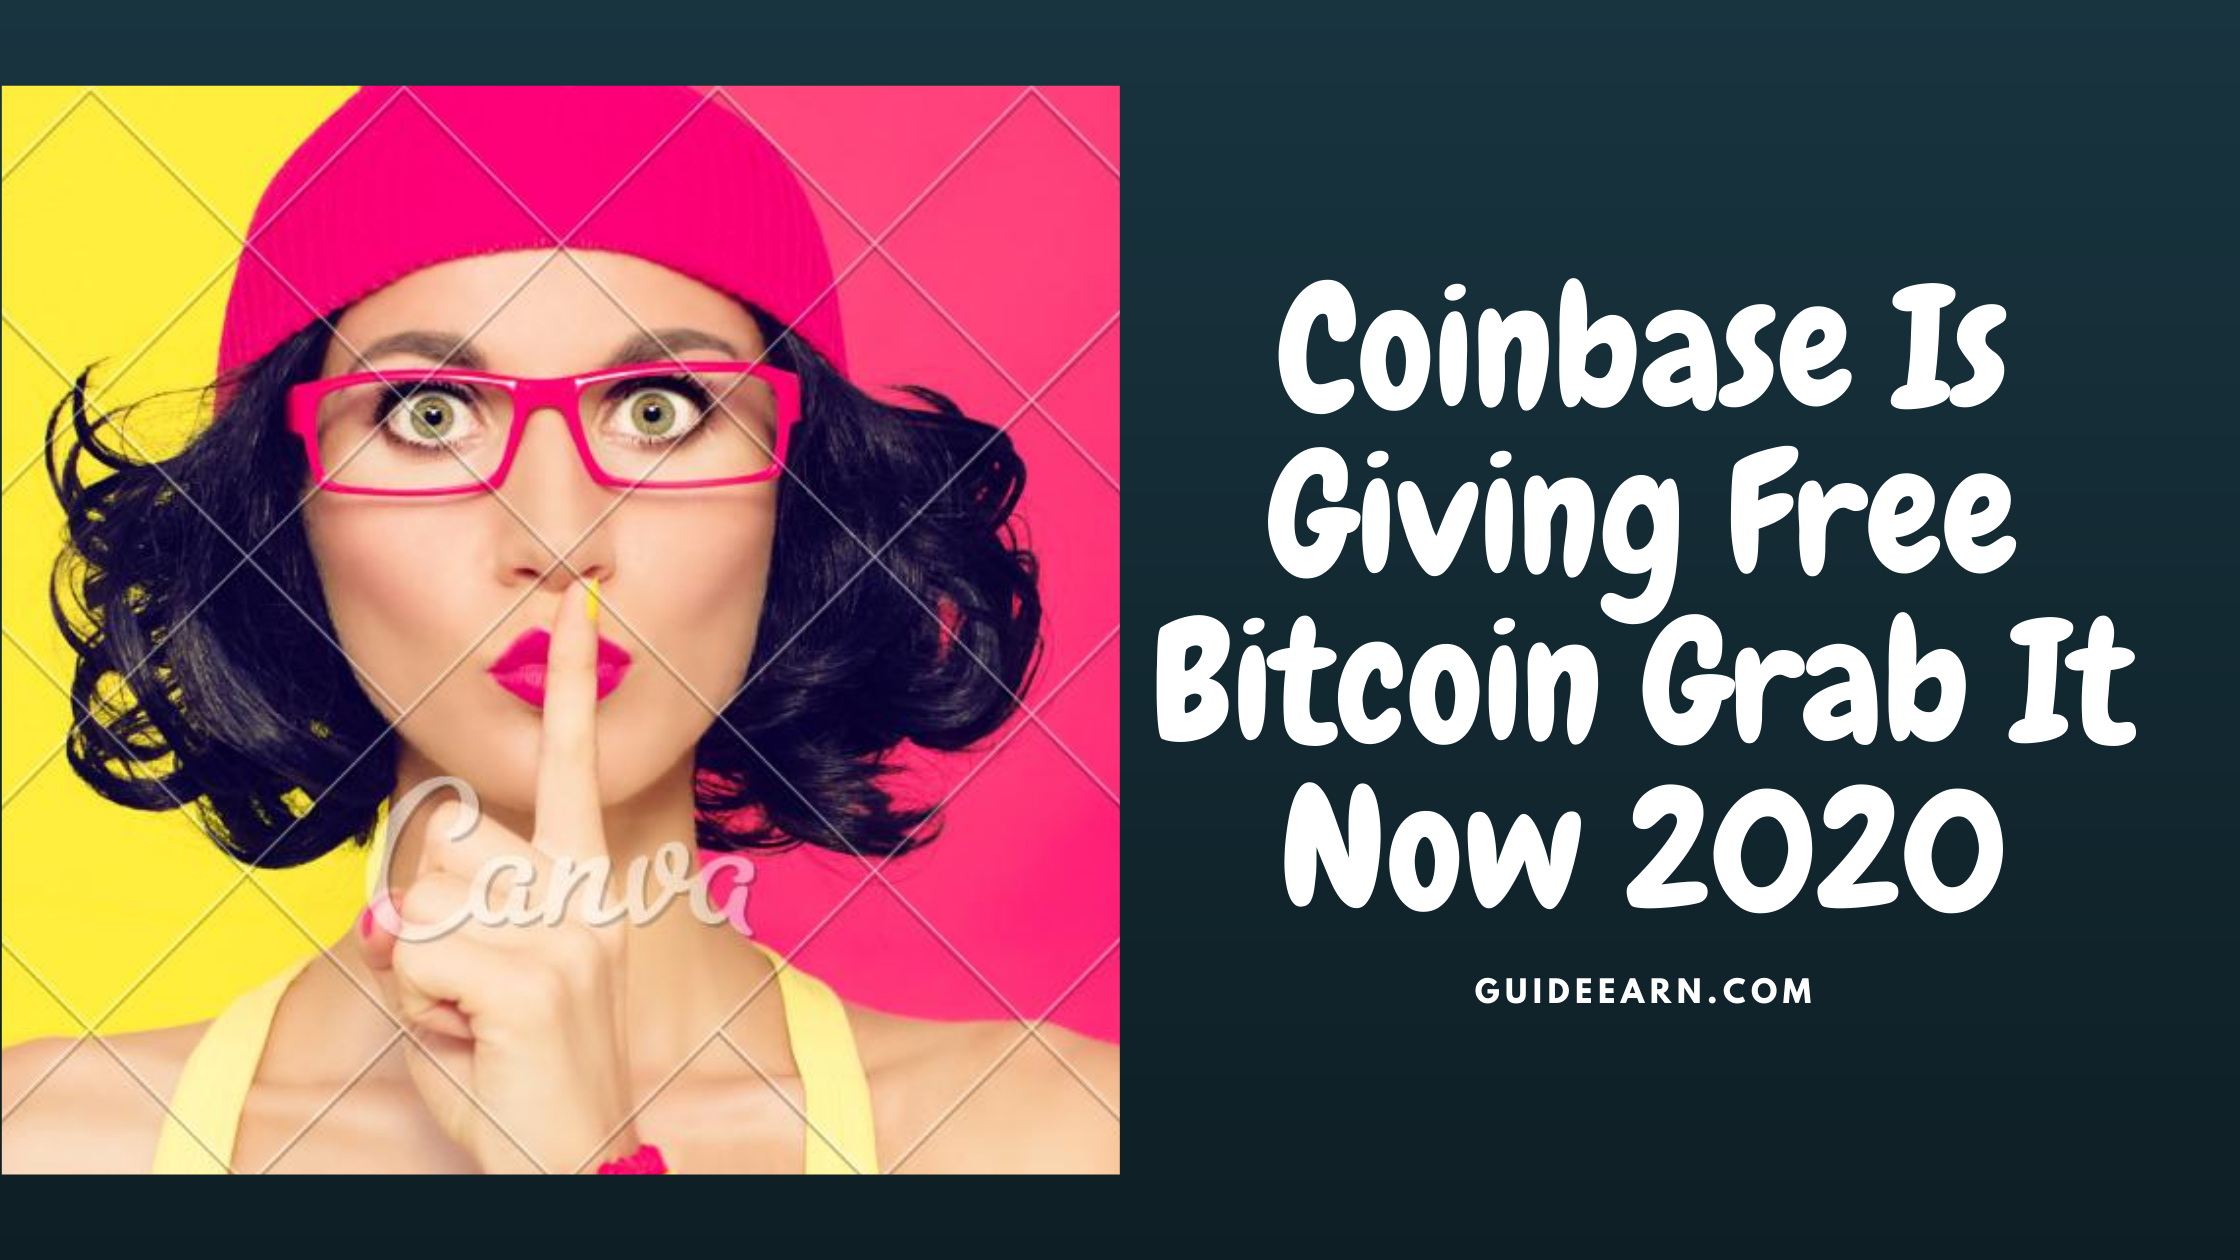 Coinbase Is Giving Free Bitcoin Grab It Now 2020 in 2020